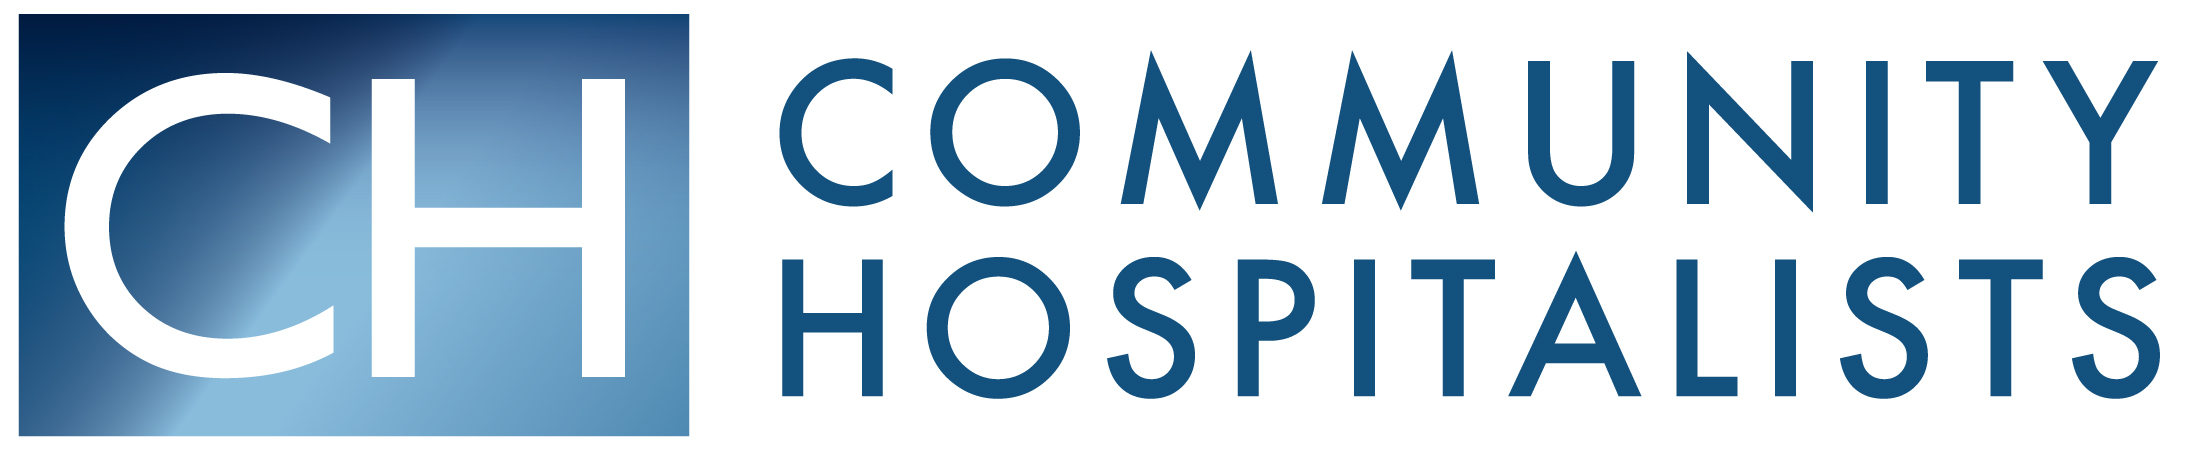 Community Hospitalists Logo